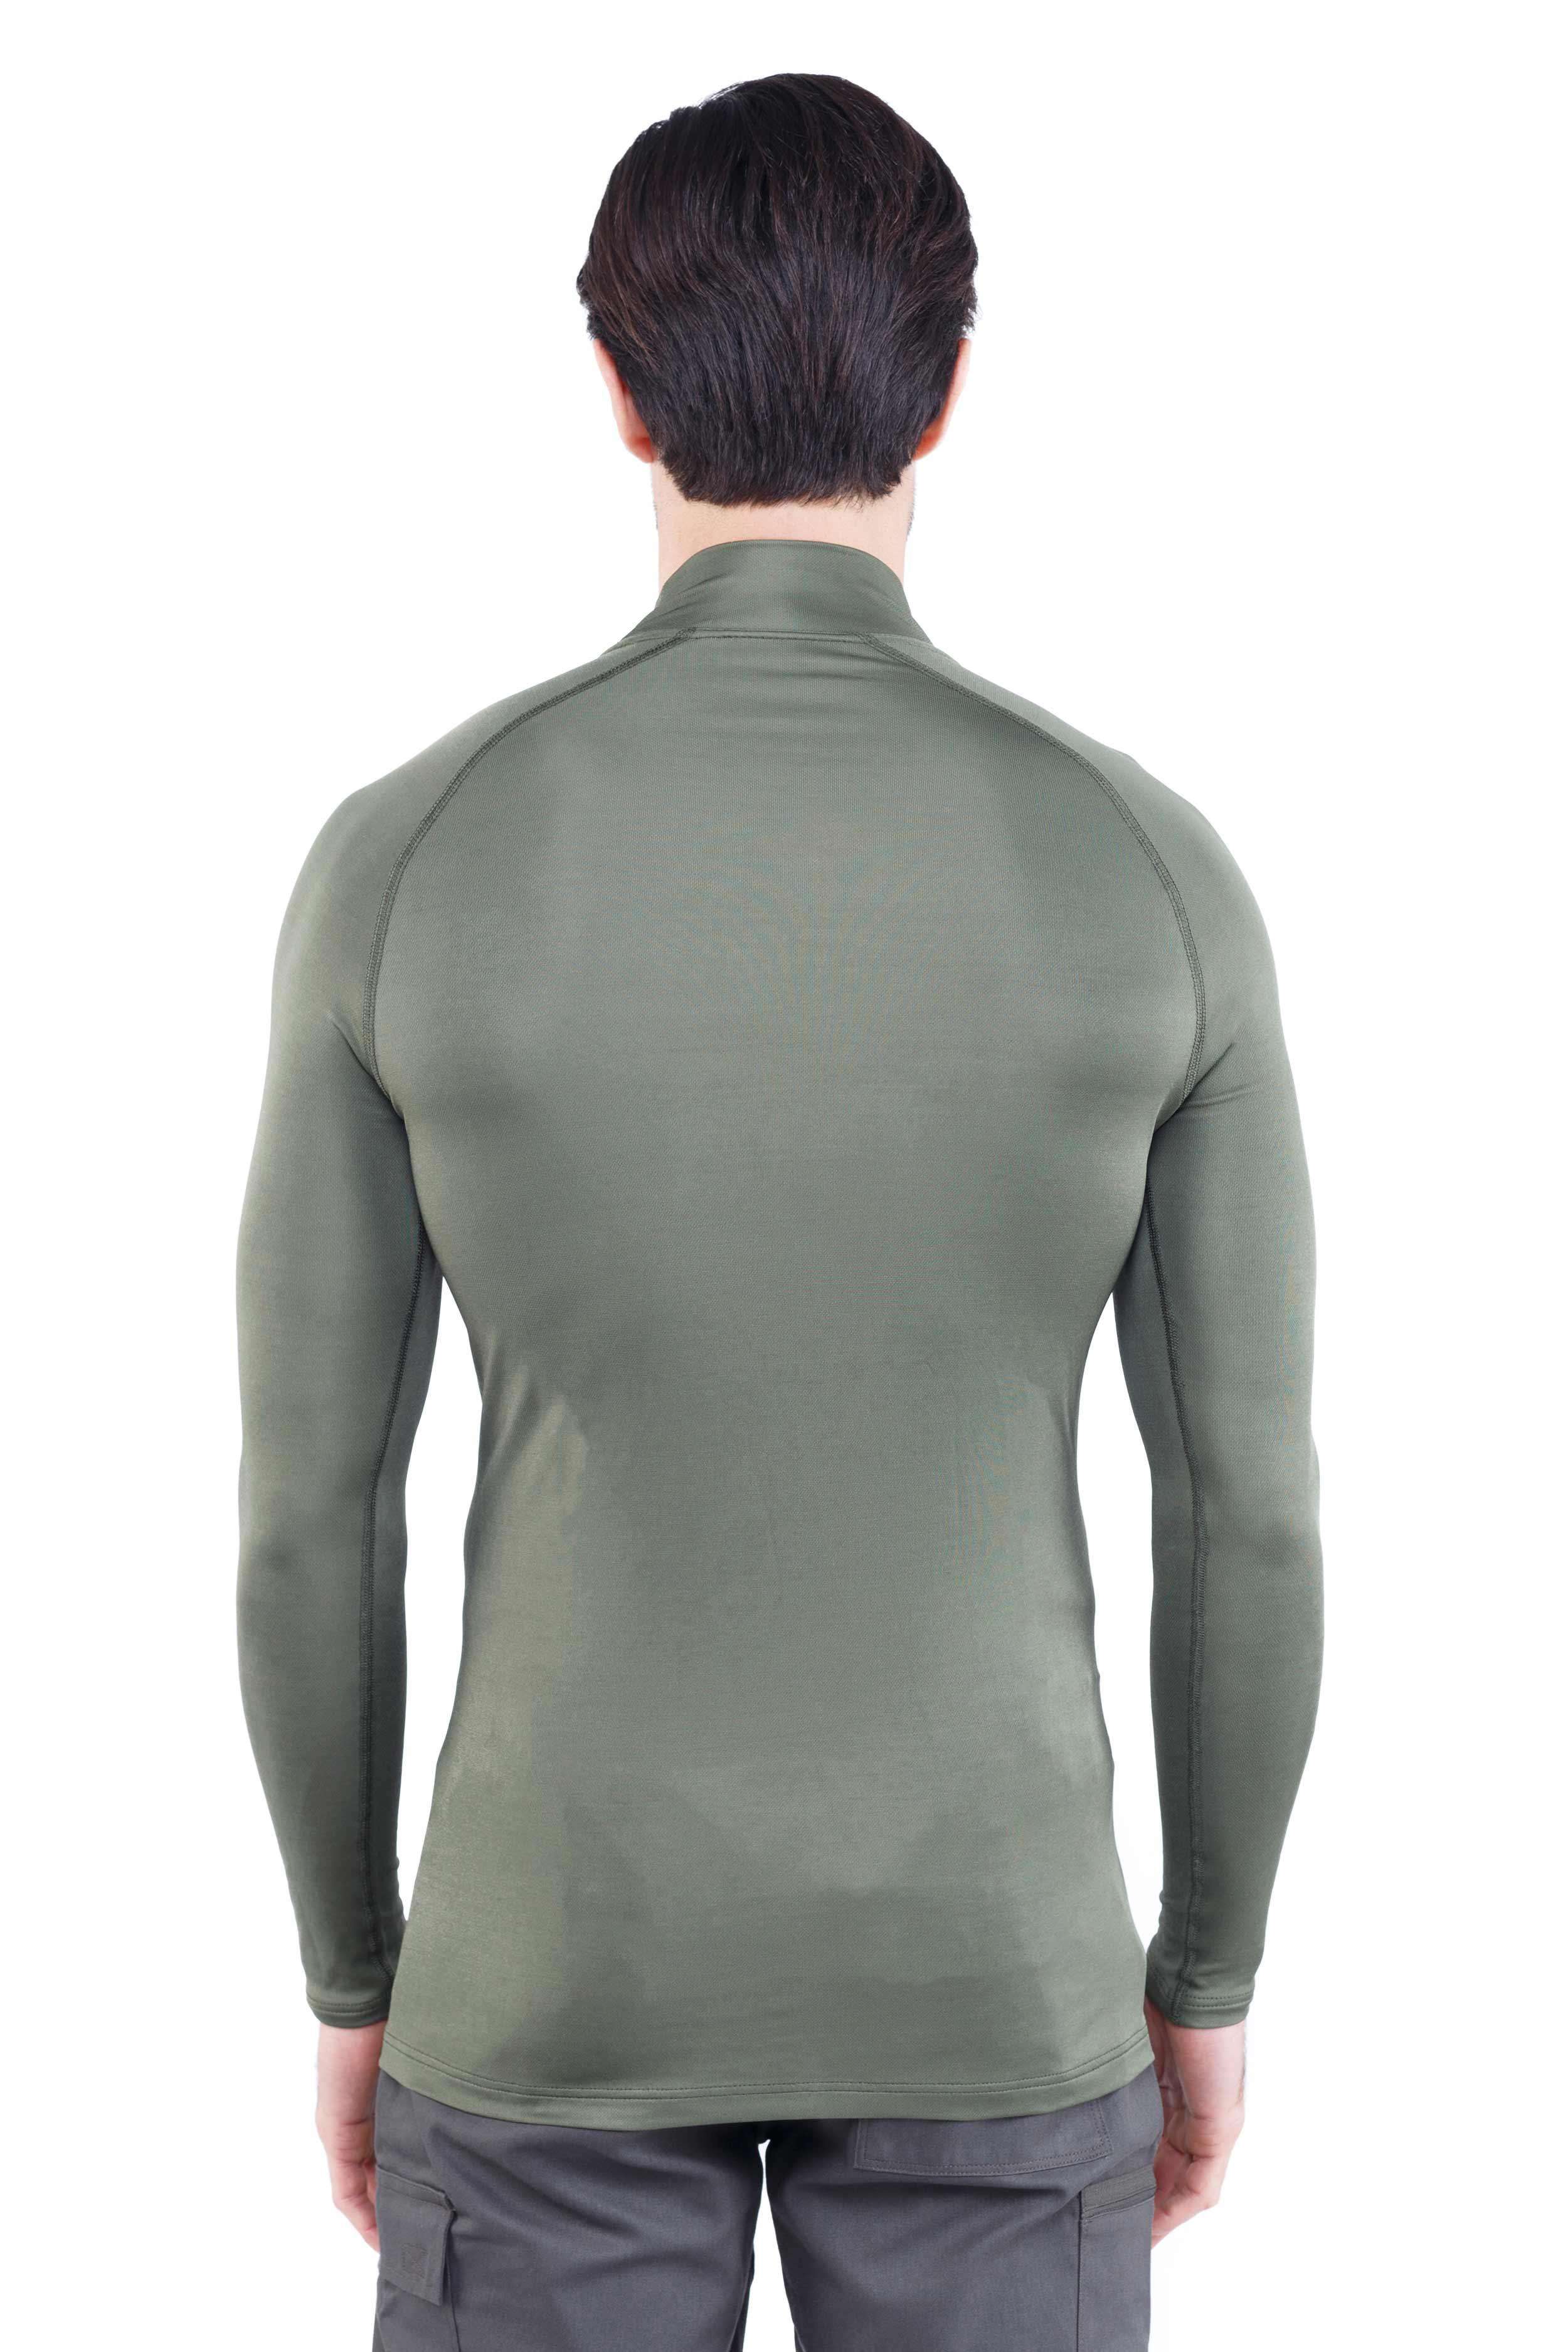 FIREPROOF THERMAL COMBAT SHIRT